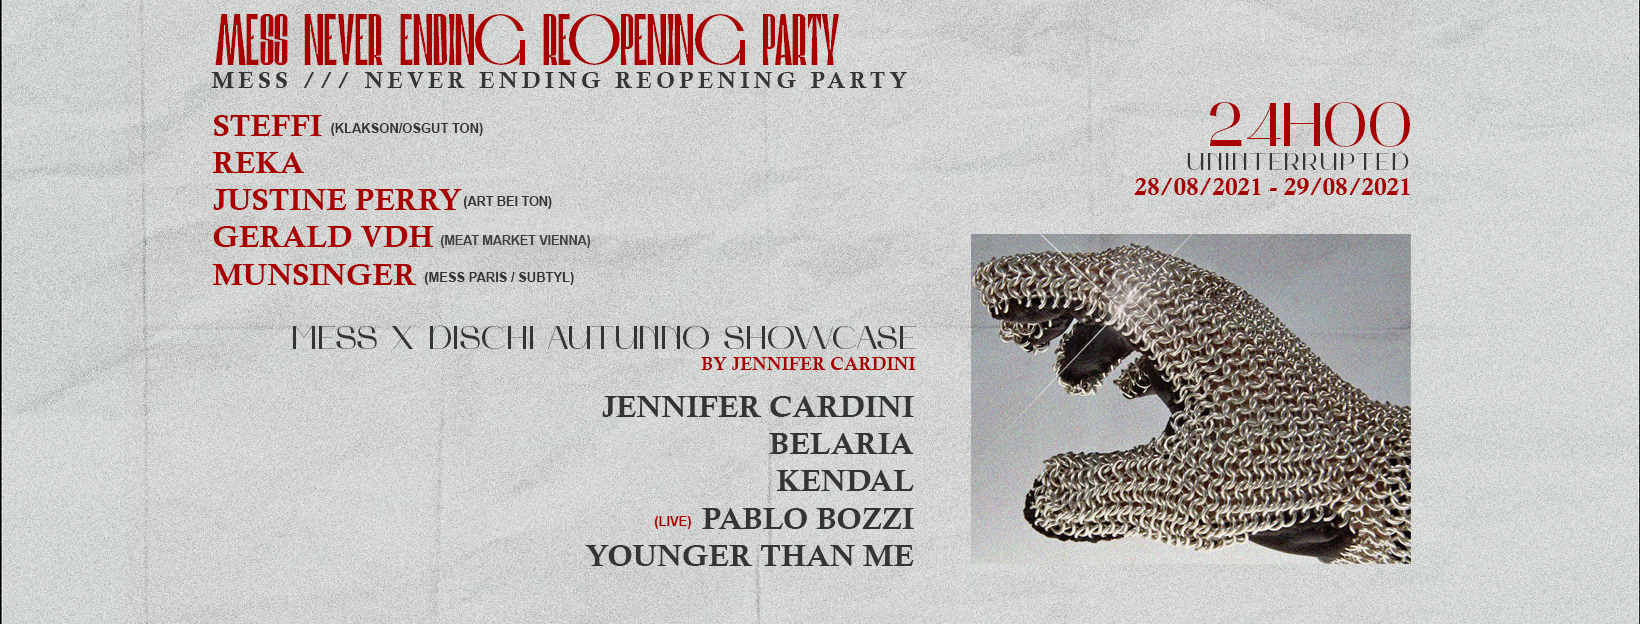 MESS /// NEVER ENDING REOPENING PARTY